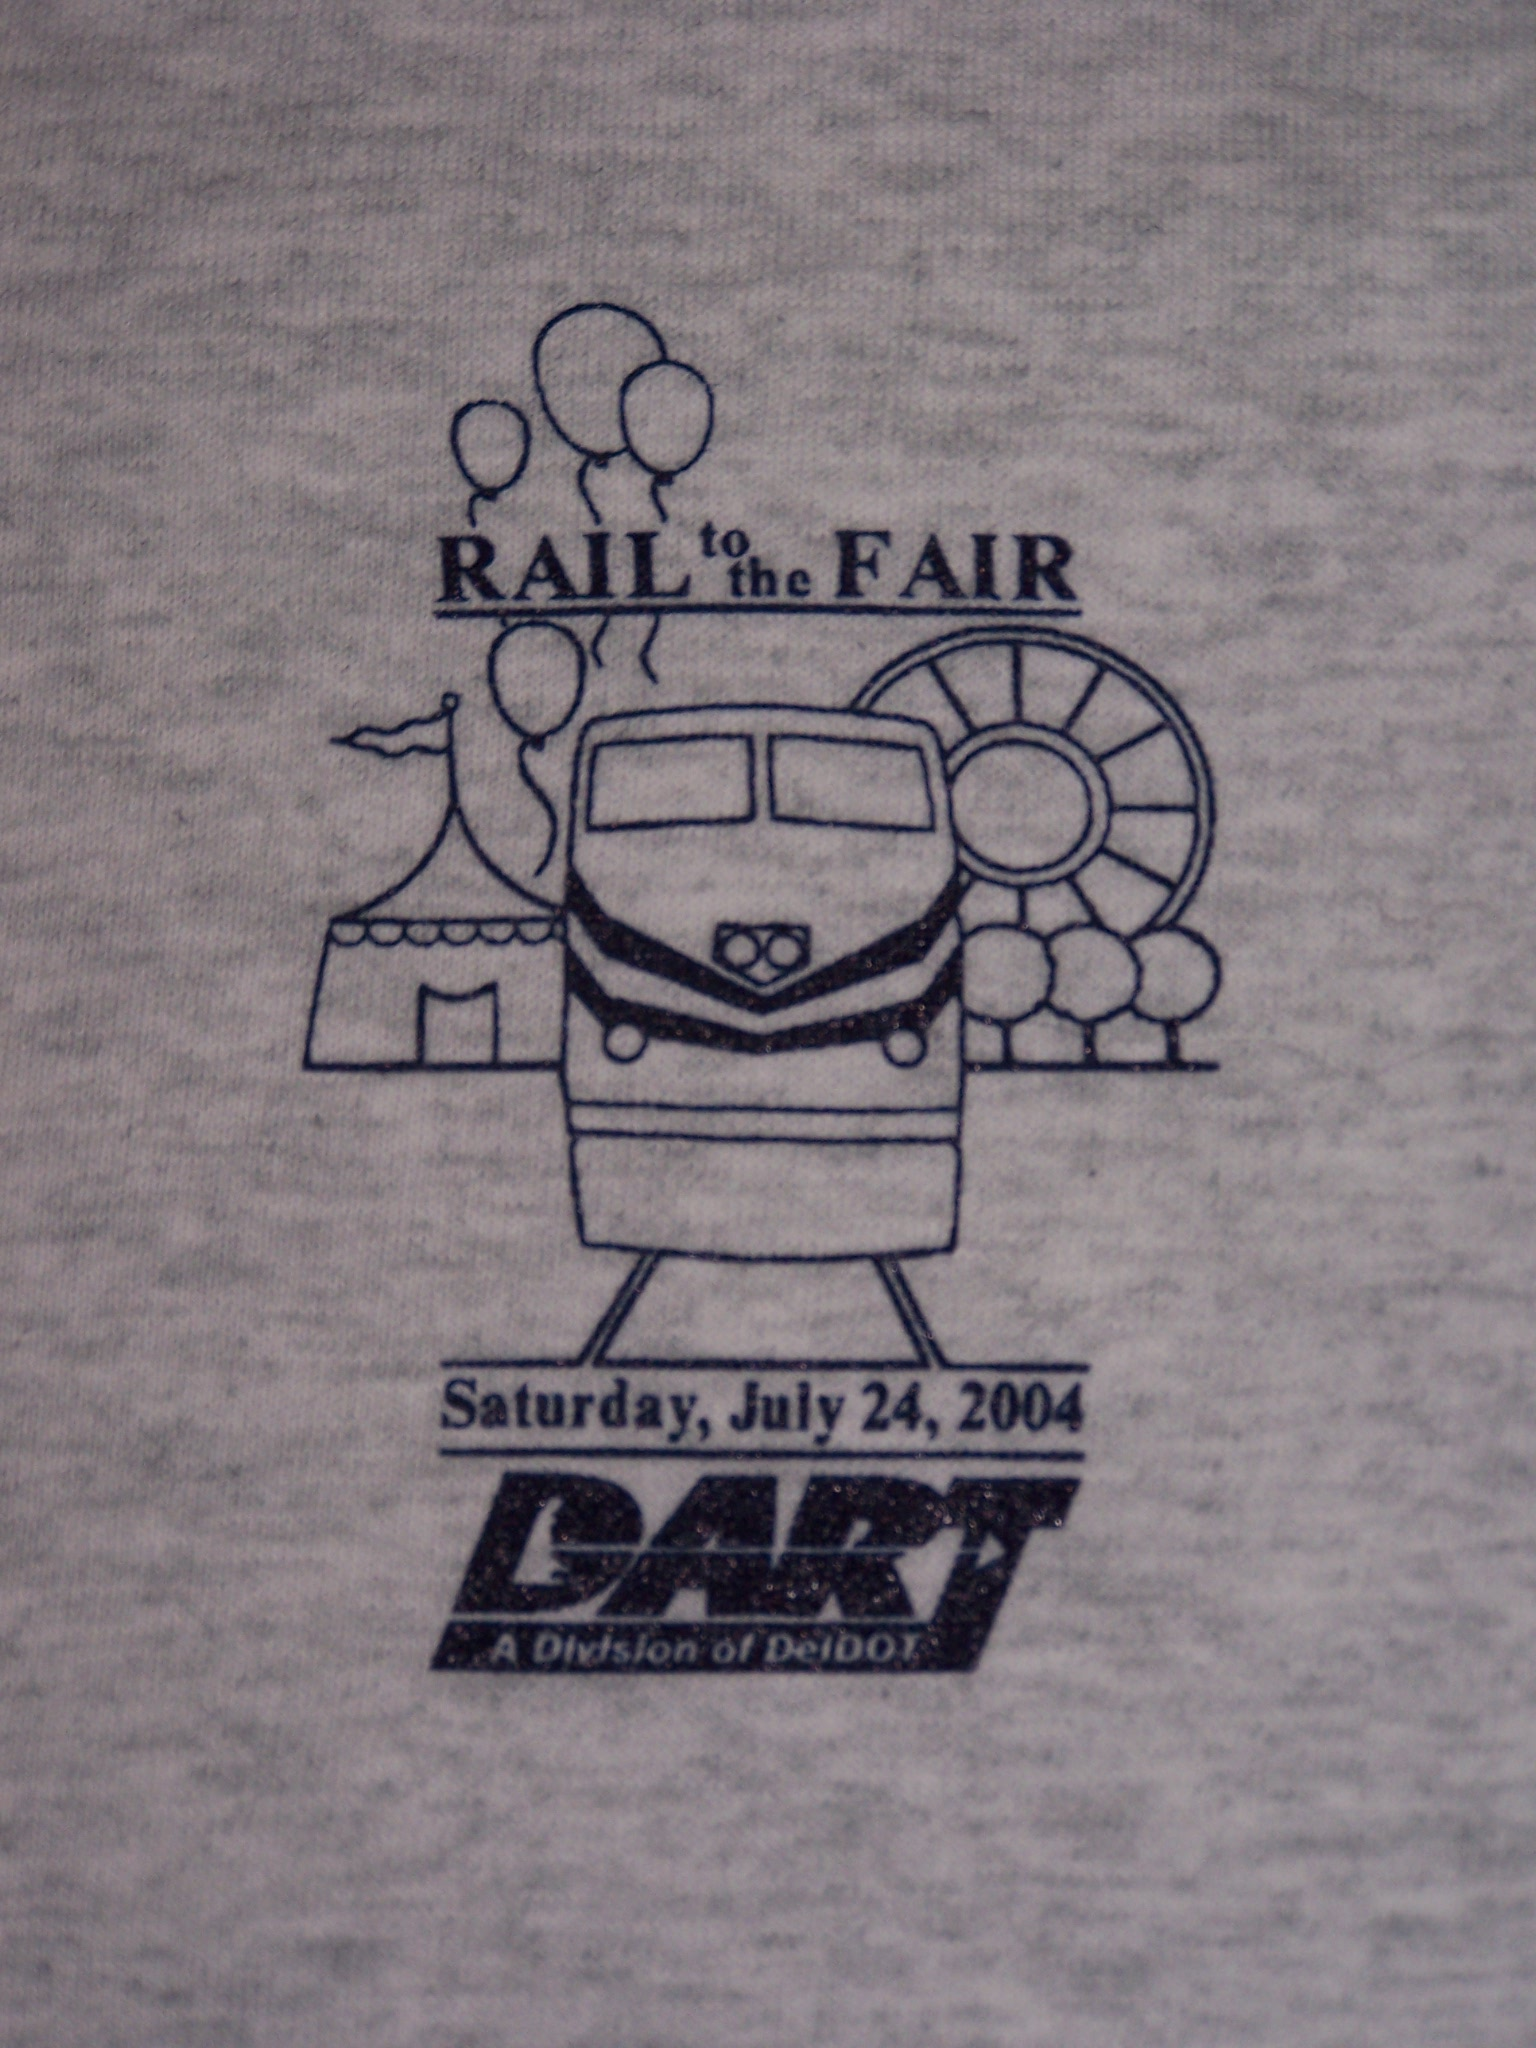 2004 Rail to the Fair tee shirt